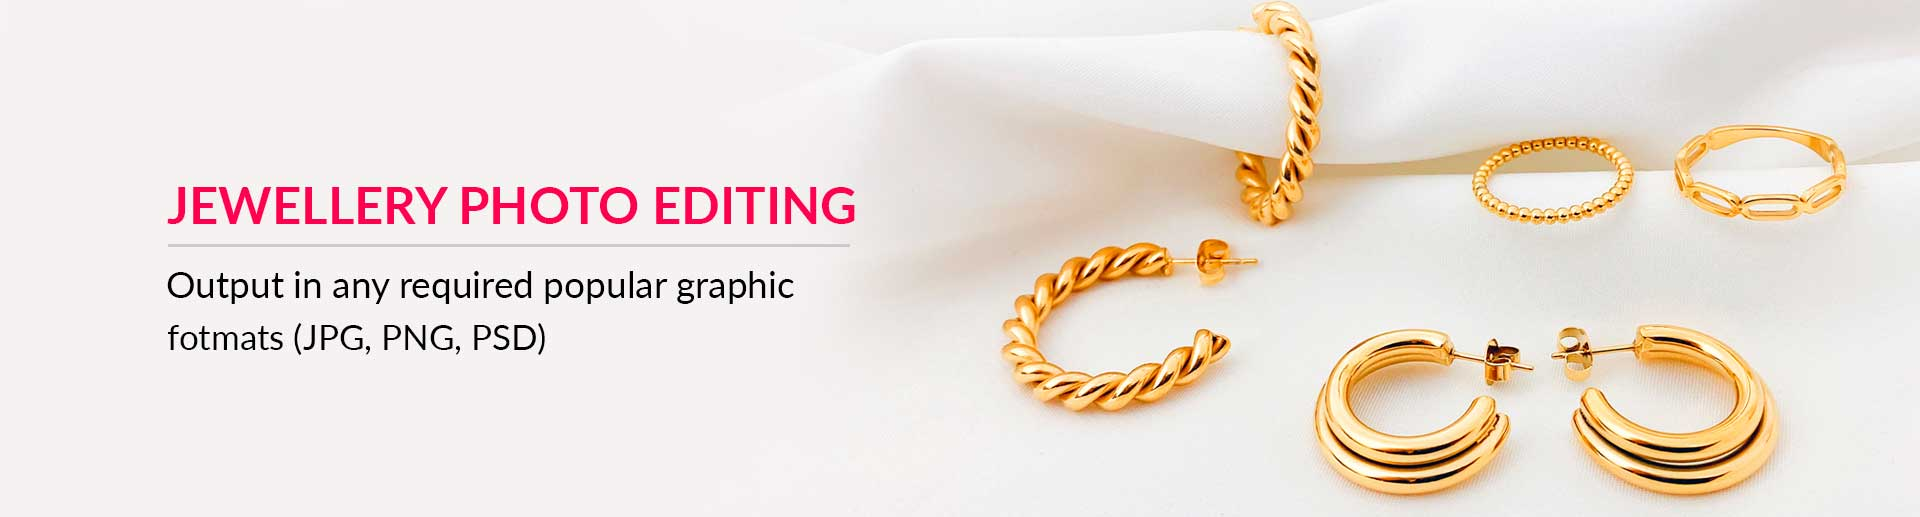 Jewellery Photo Editing monly